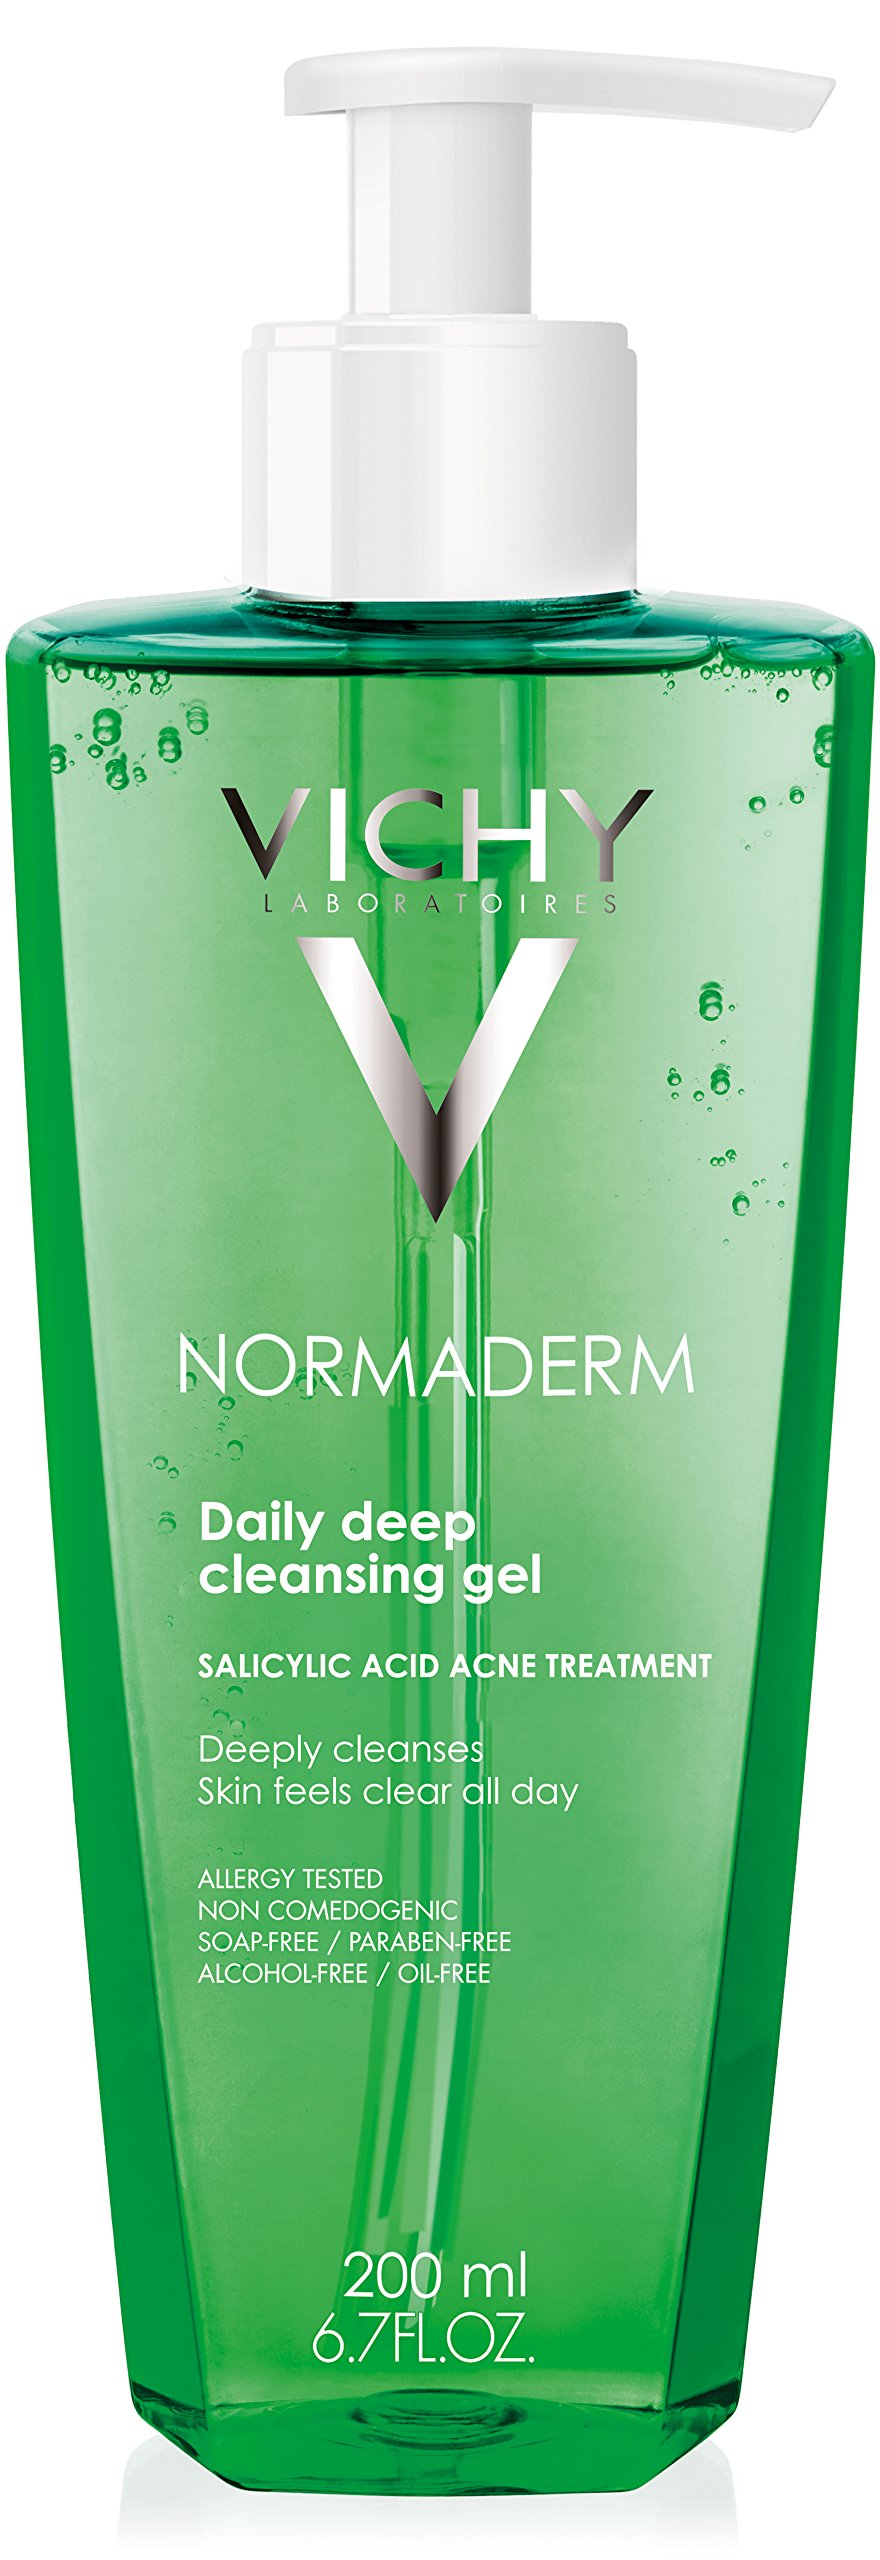 Vichy Normaderm Daily Deep Cleansing Gel Cleanser with Salicylic Acid